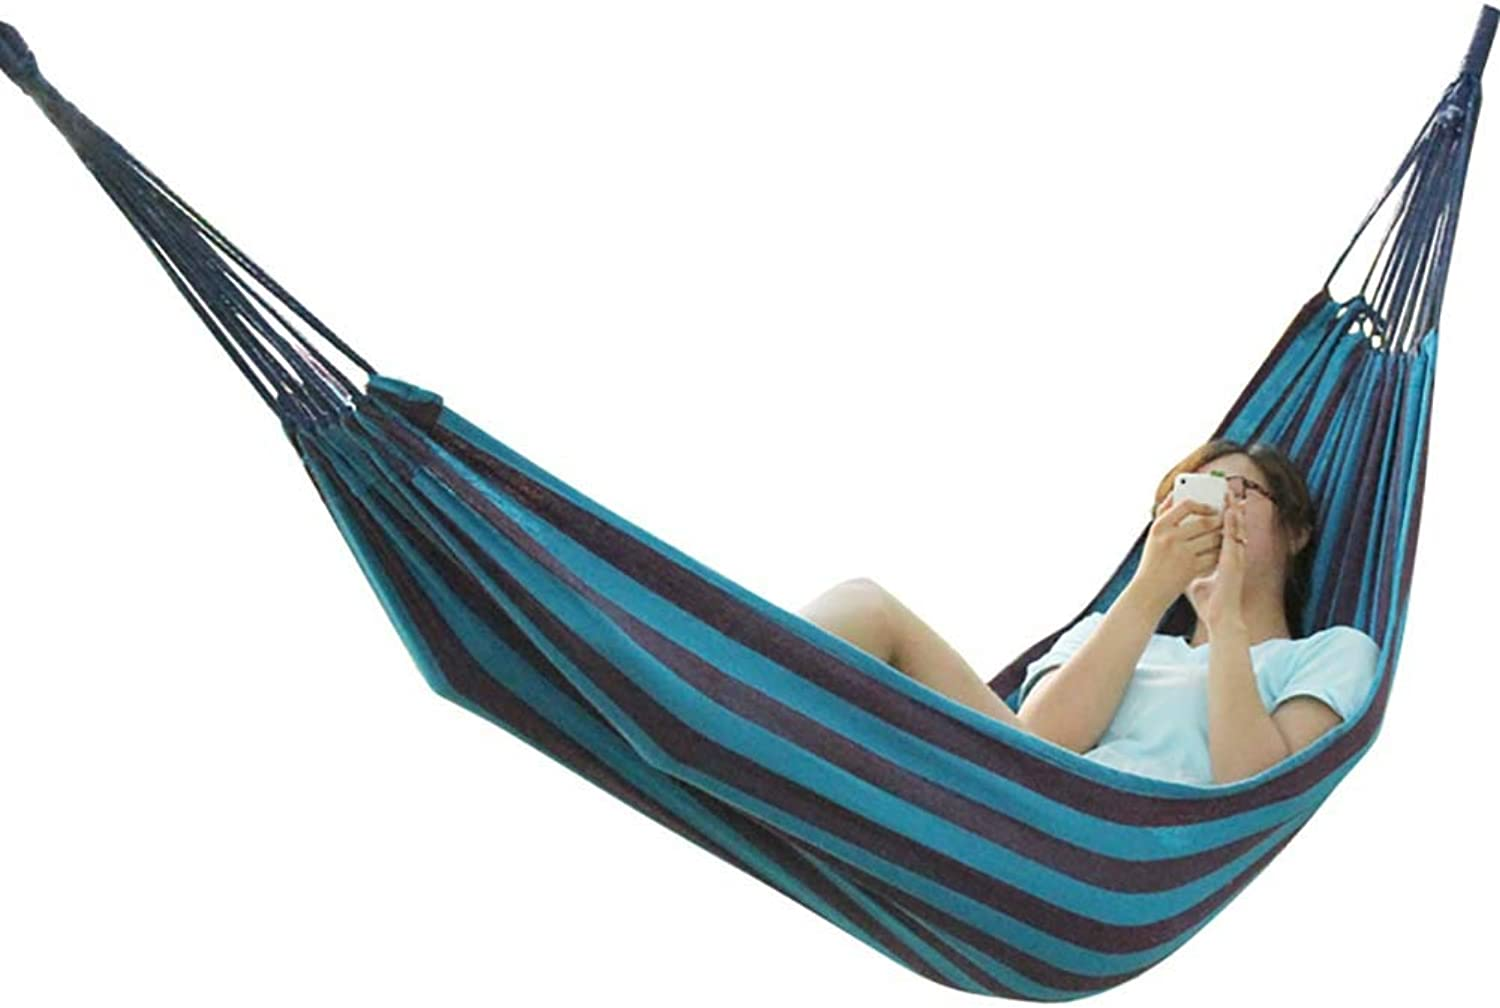 Outdoor Camping Hammock, HandWoven Cotton Rope Canvas Breathable Single Hammock, Load Capacity 150kg, Lounge Chair, Beach, Garden, Backpack Travel, 200  100cm